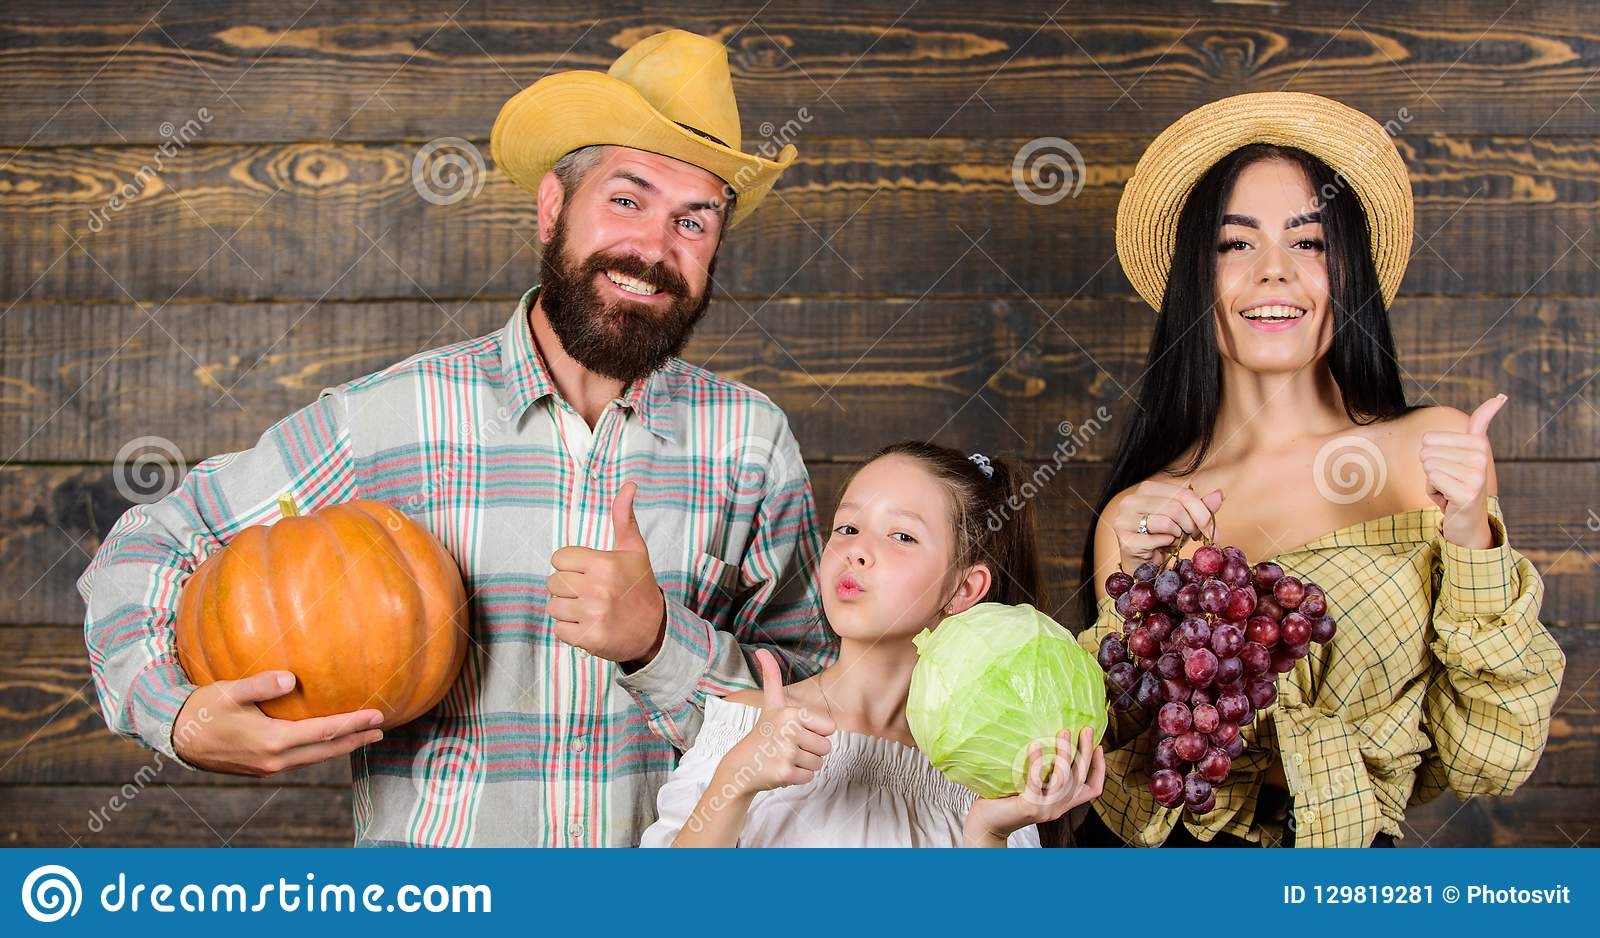 Family rustic style farmers market with fall harvest. Harvest festival concept. Parents and daughter celebrate harvest